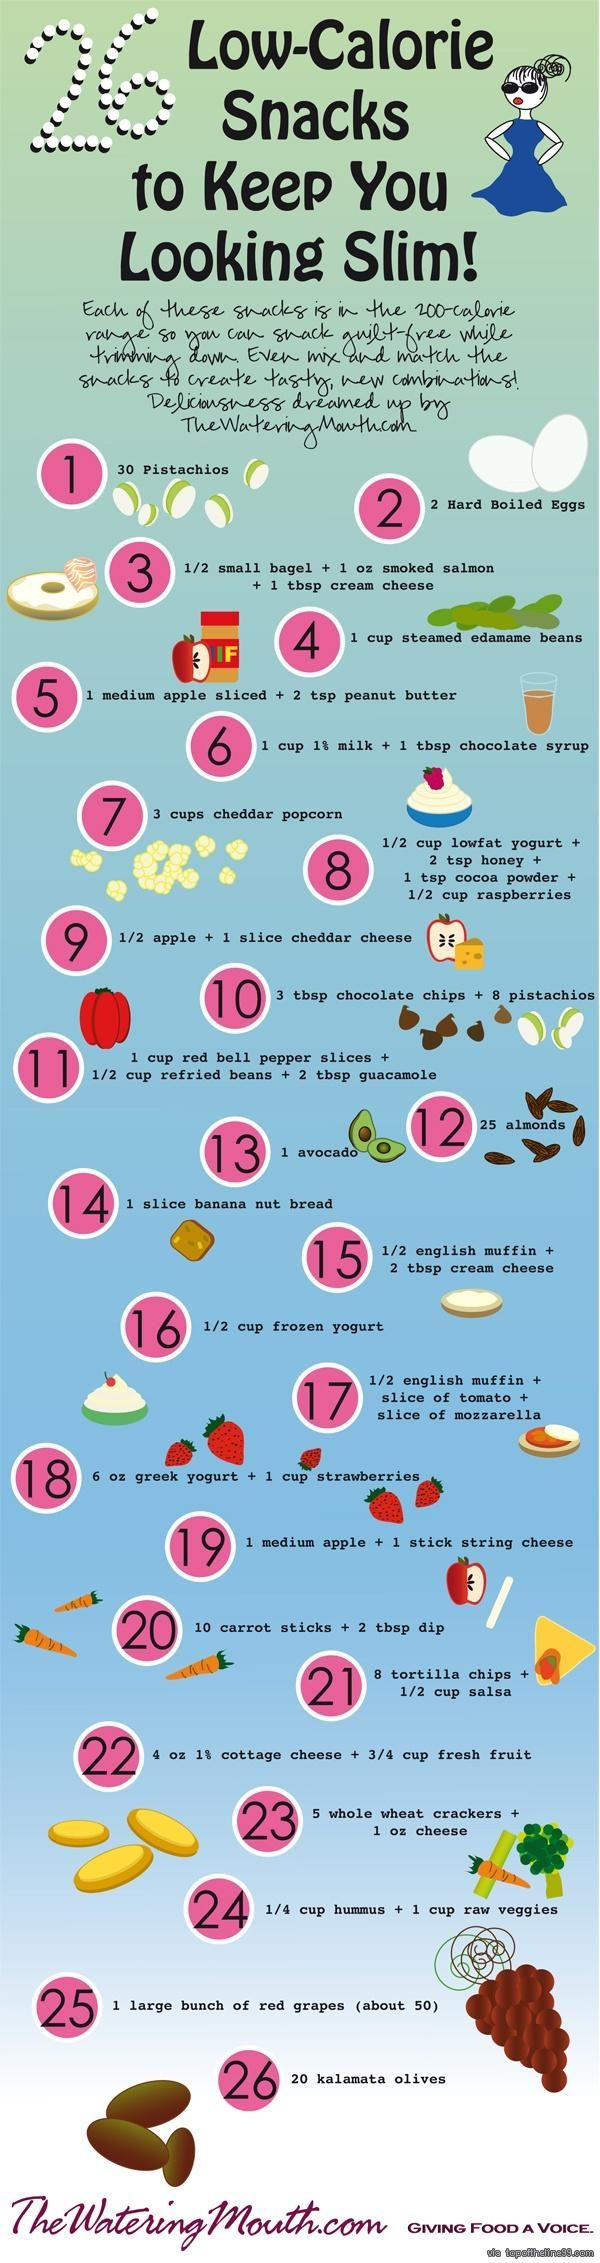 This #info #graphic makes a great quick reference of 26 Low-Calorie #Snacks.